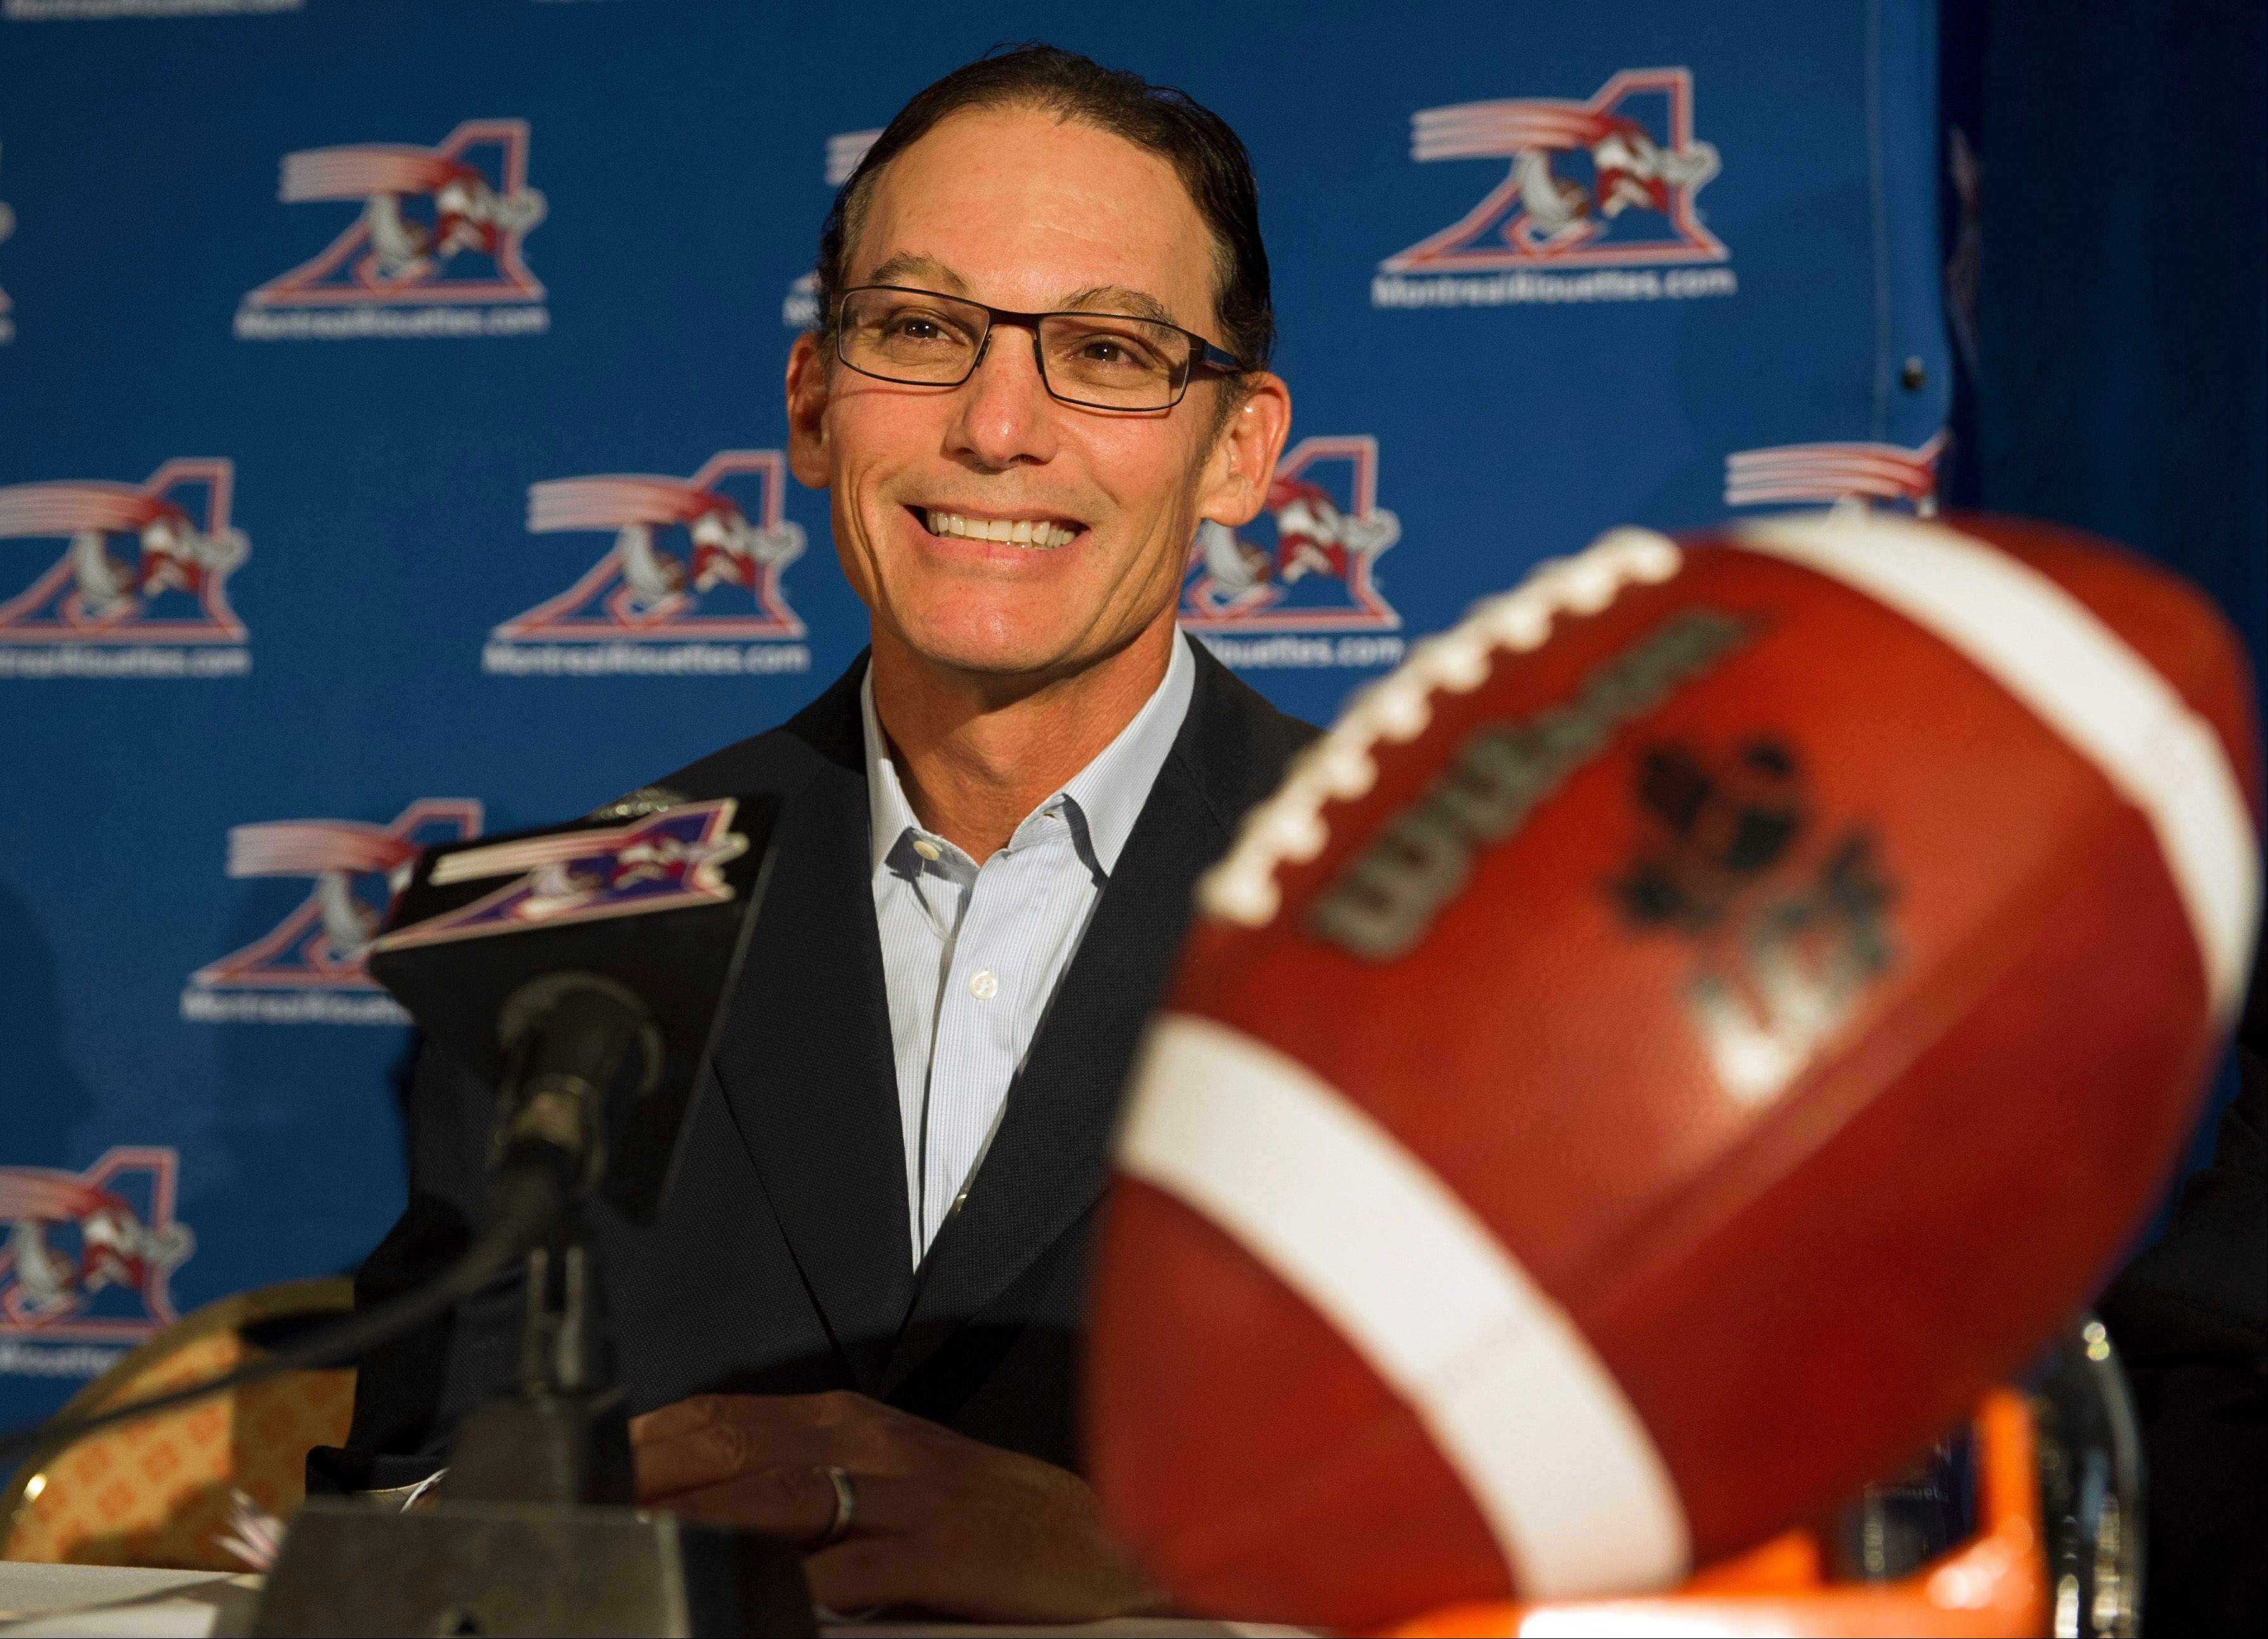 After 17 years in the NFL and five years with the Montreal Alouettes, 57-year-old Mark Trestman is the new head coach of the Chicago Bears.